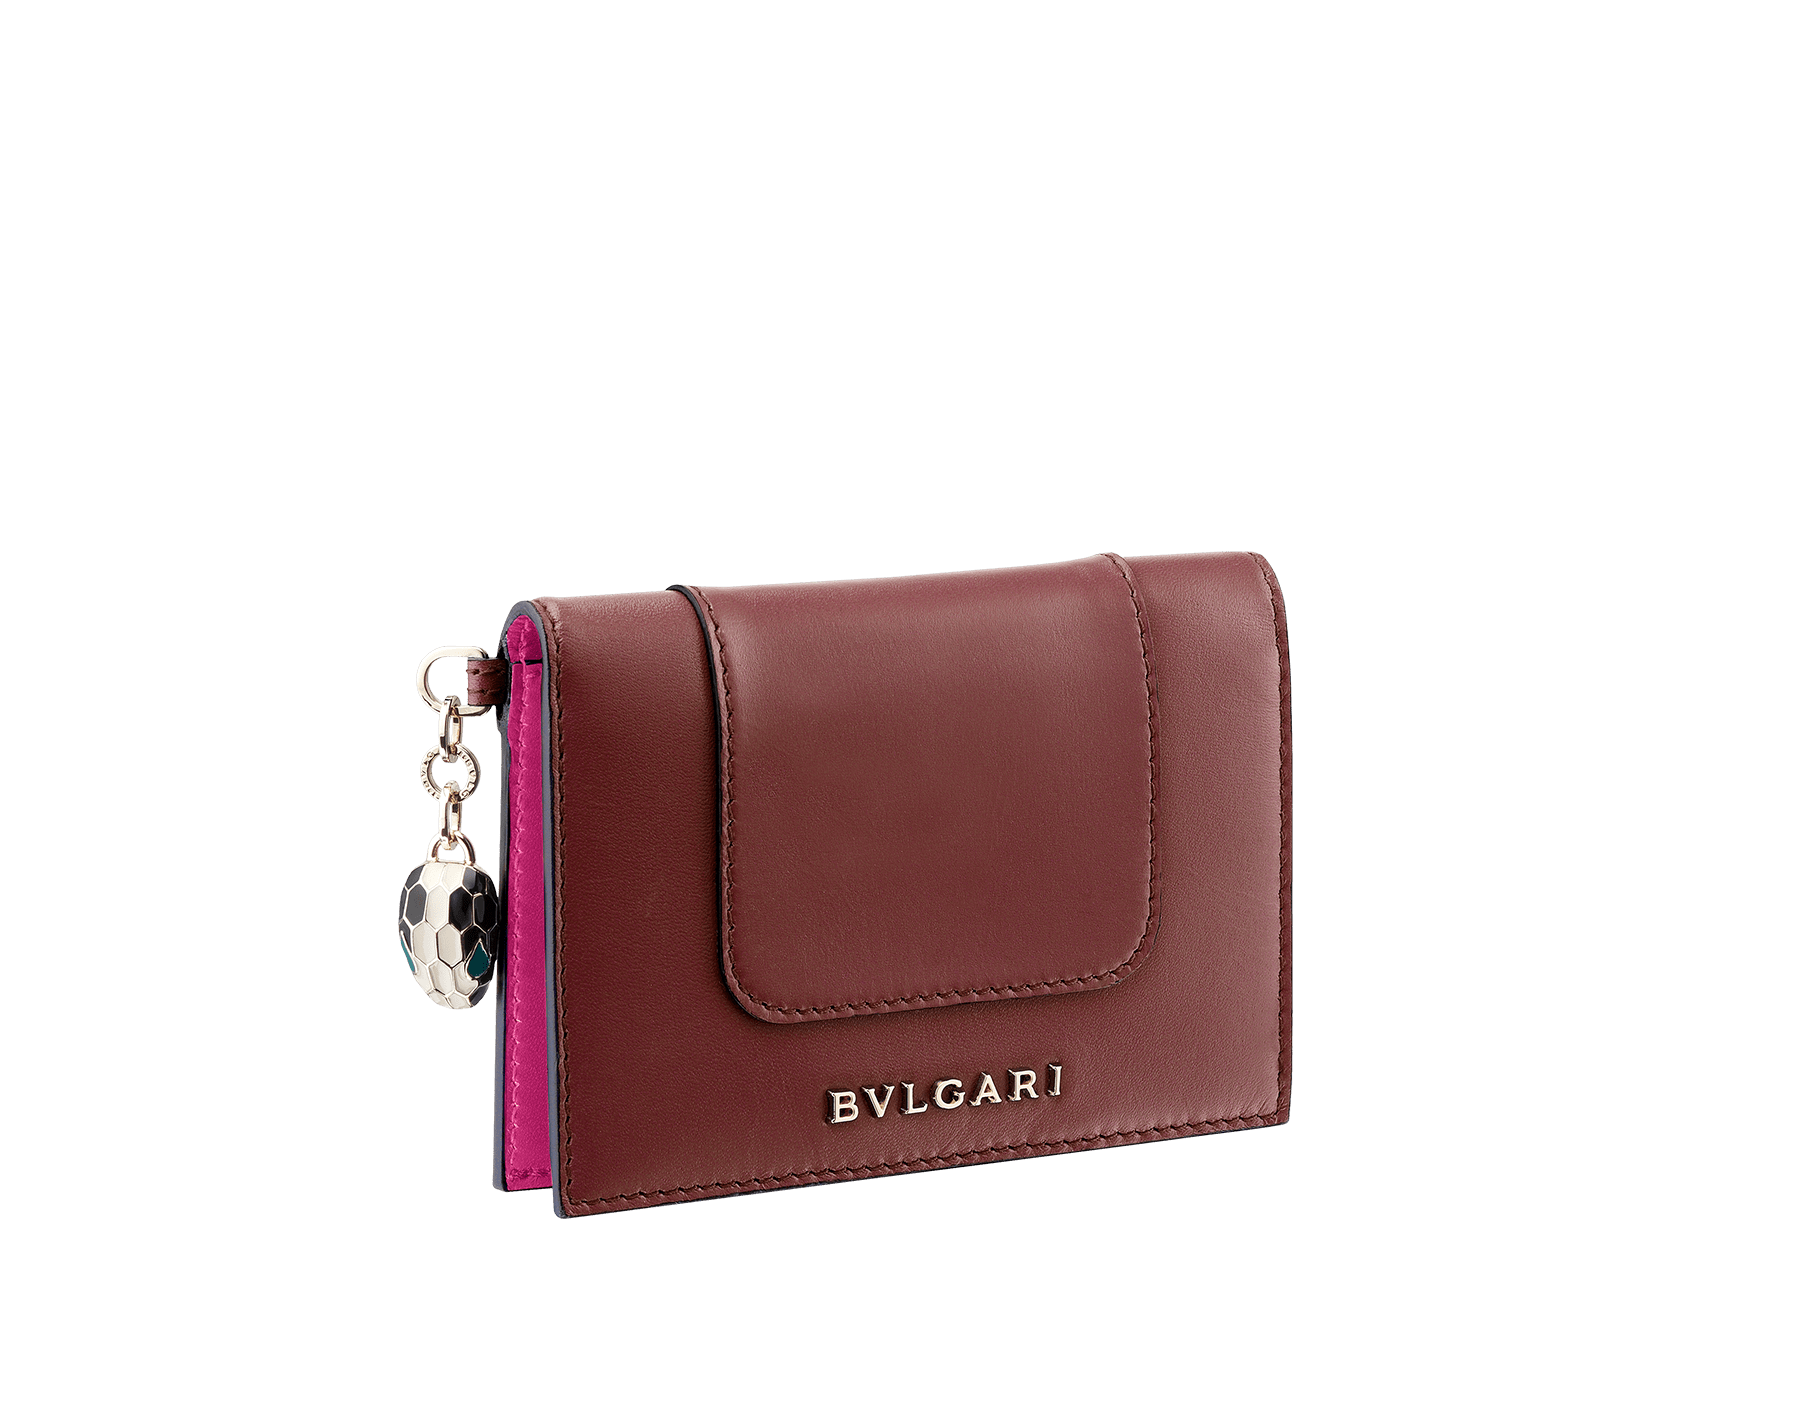 Serpenti Forever folded credit card holder in Roman garnet and pink spinel calf leather. Snakehead charm with black and white enamel, and green malachite enamel eyes. SEA-CC-HOLDER-FOLD-CLb image 1